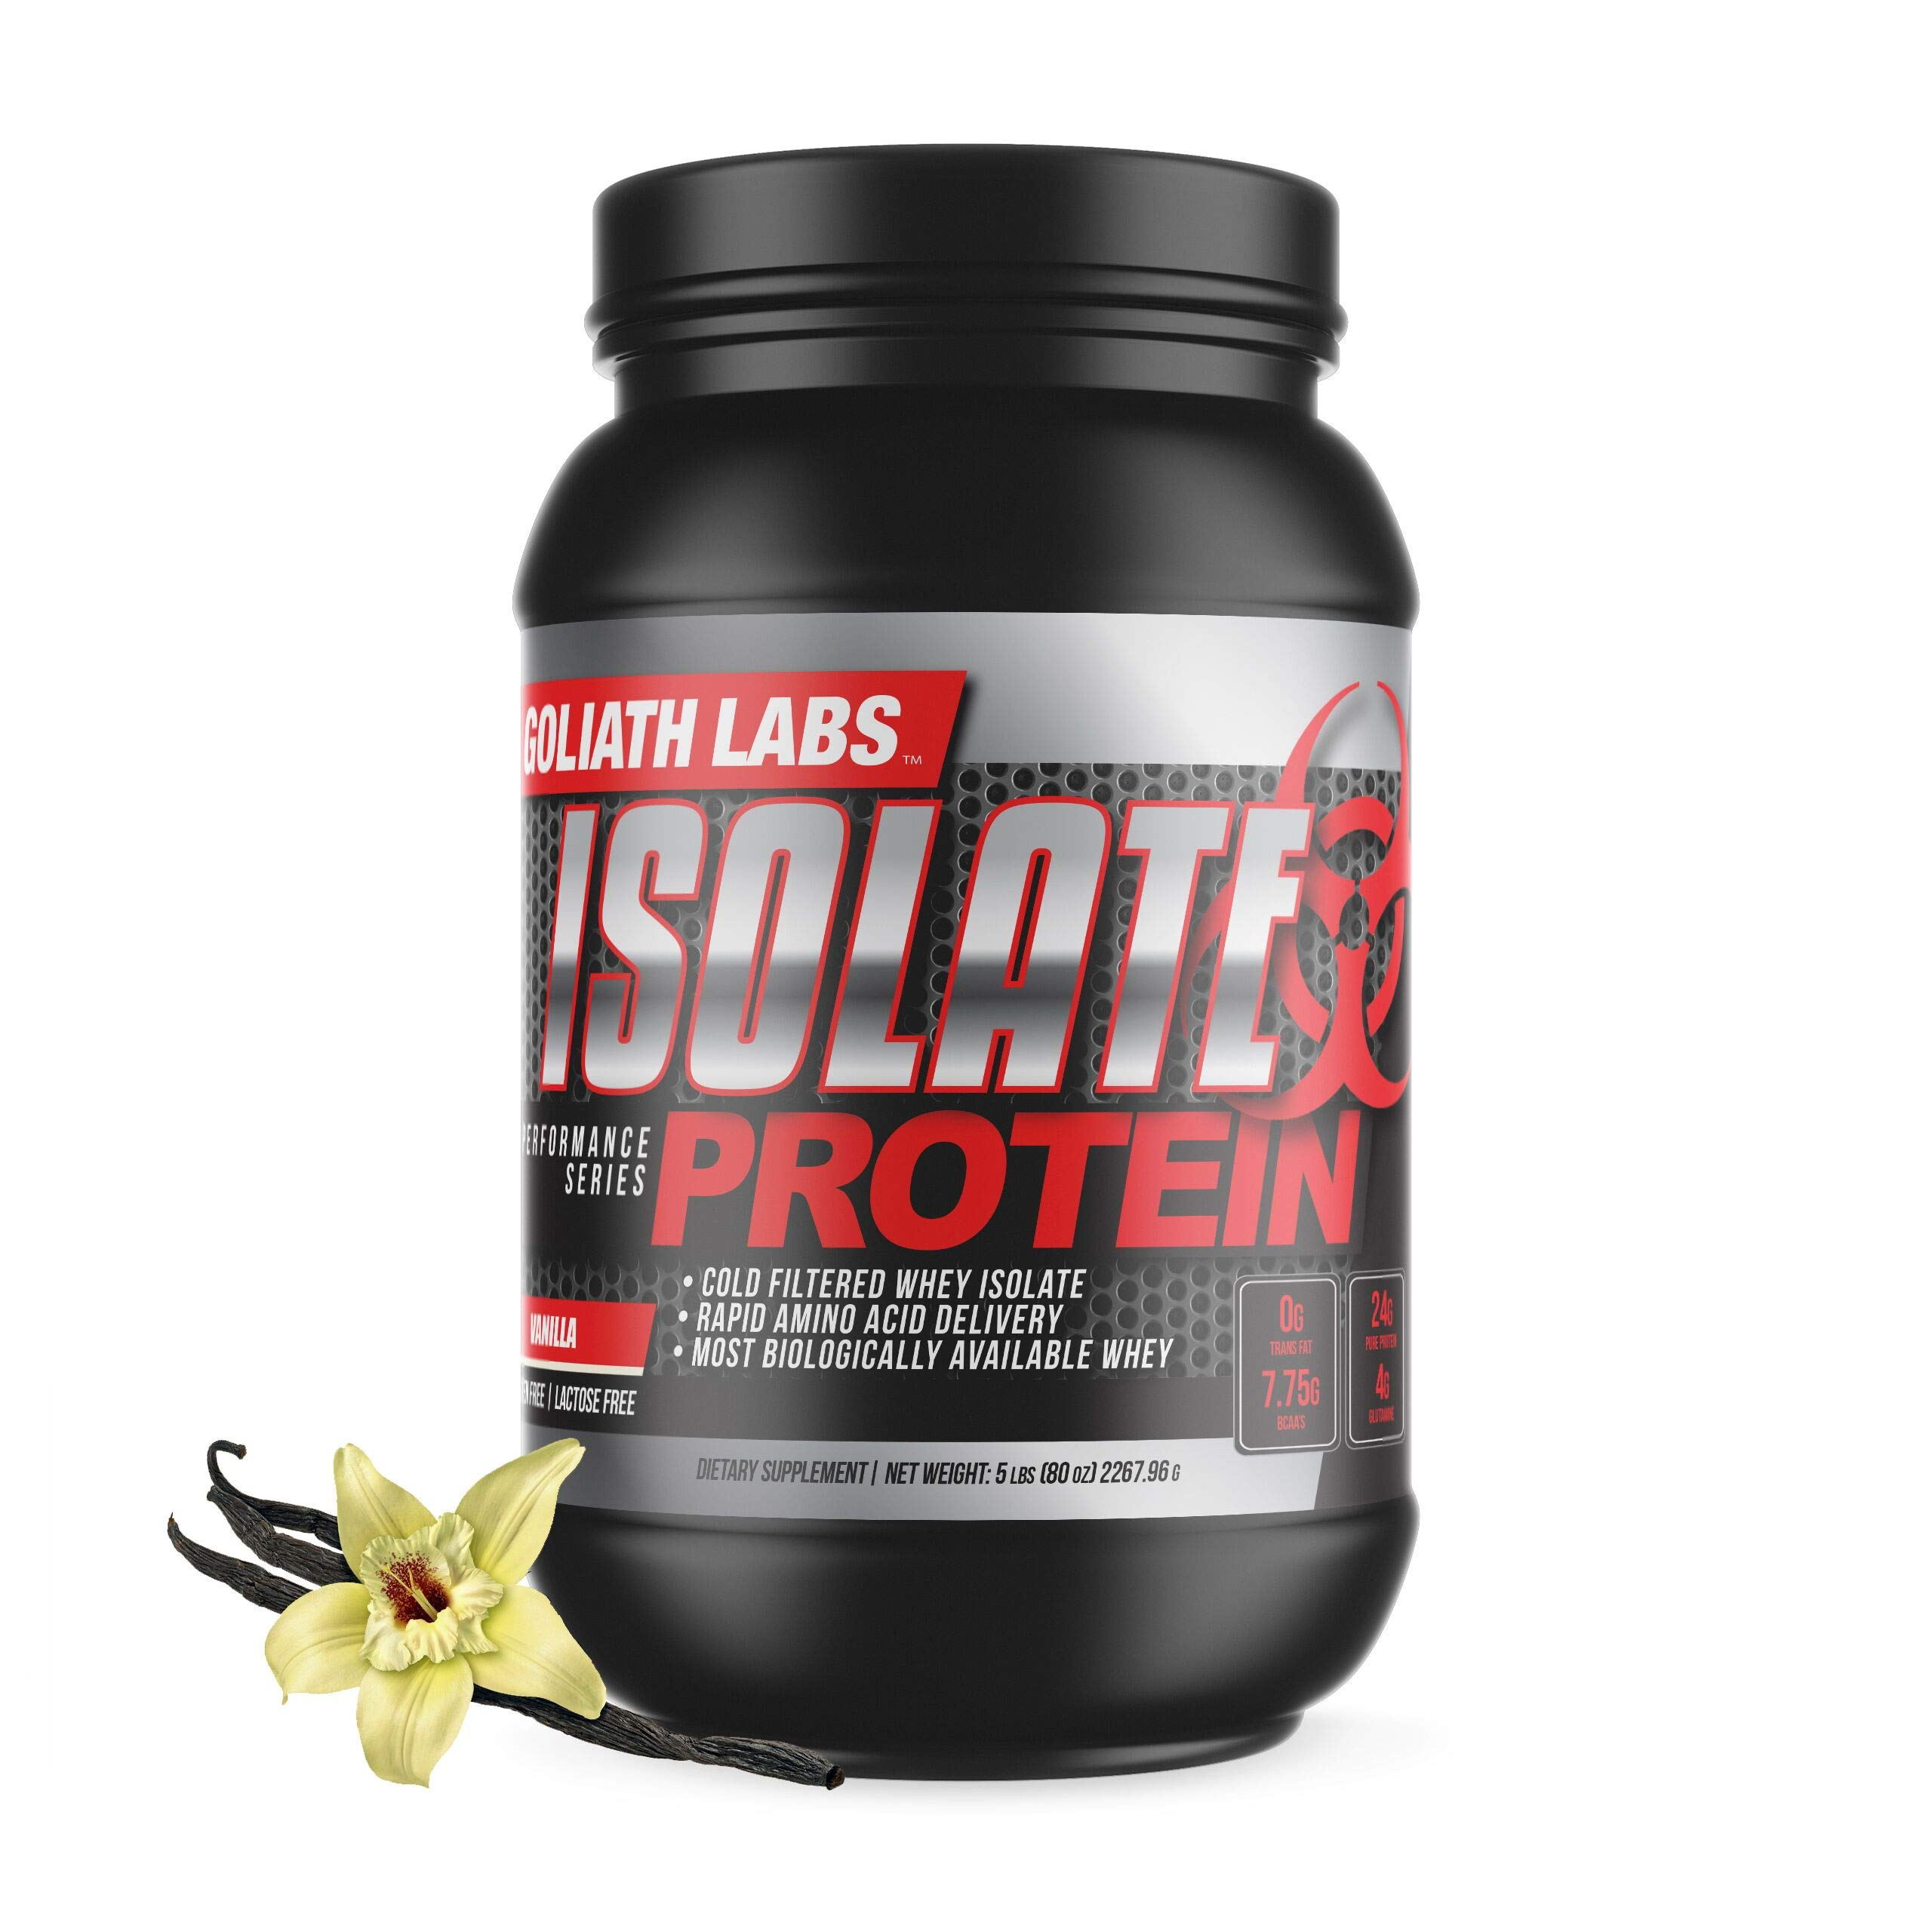 Goliath Labs Isolate Protein 5 Lbs (Vanilla) by Goliath Labs